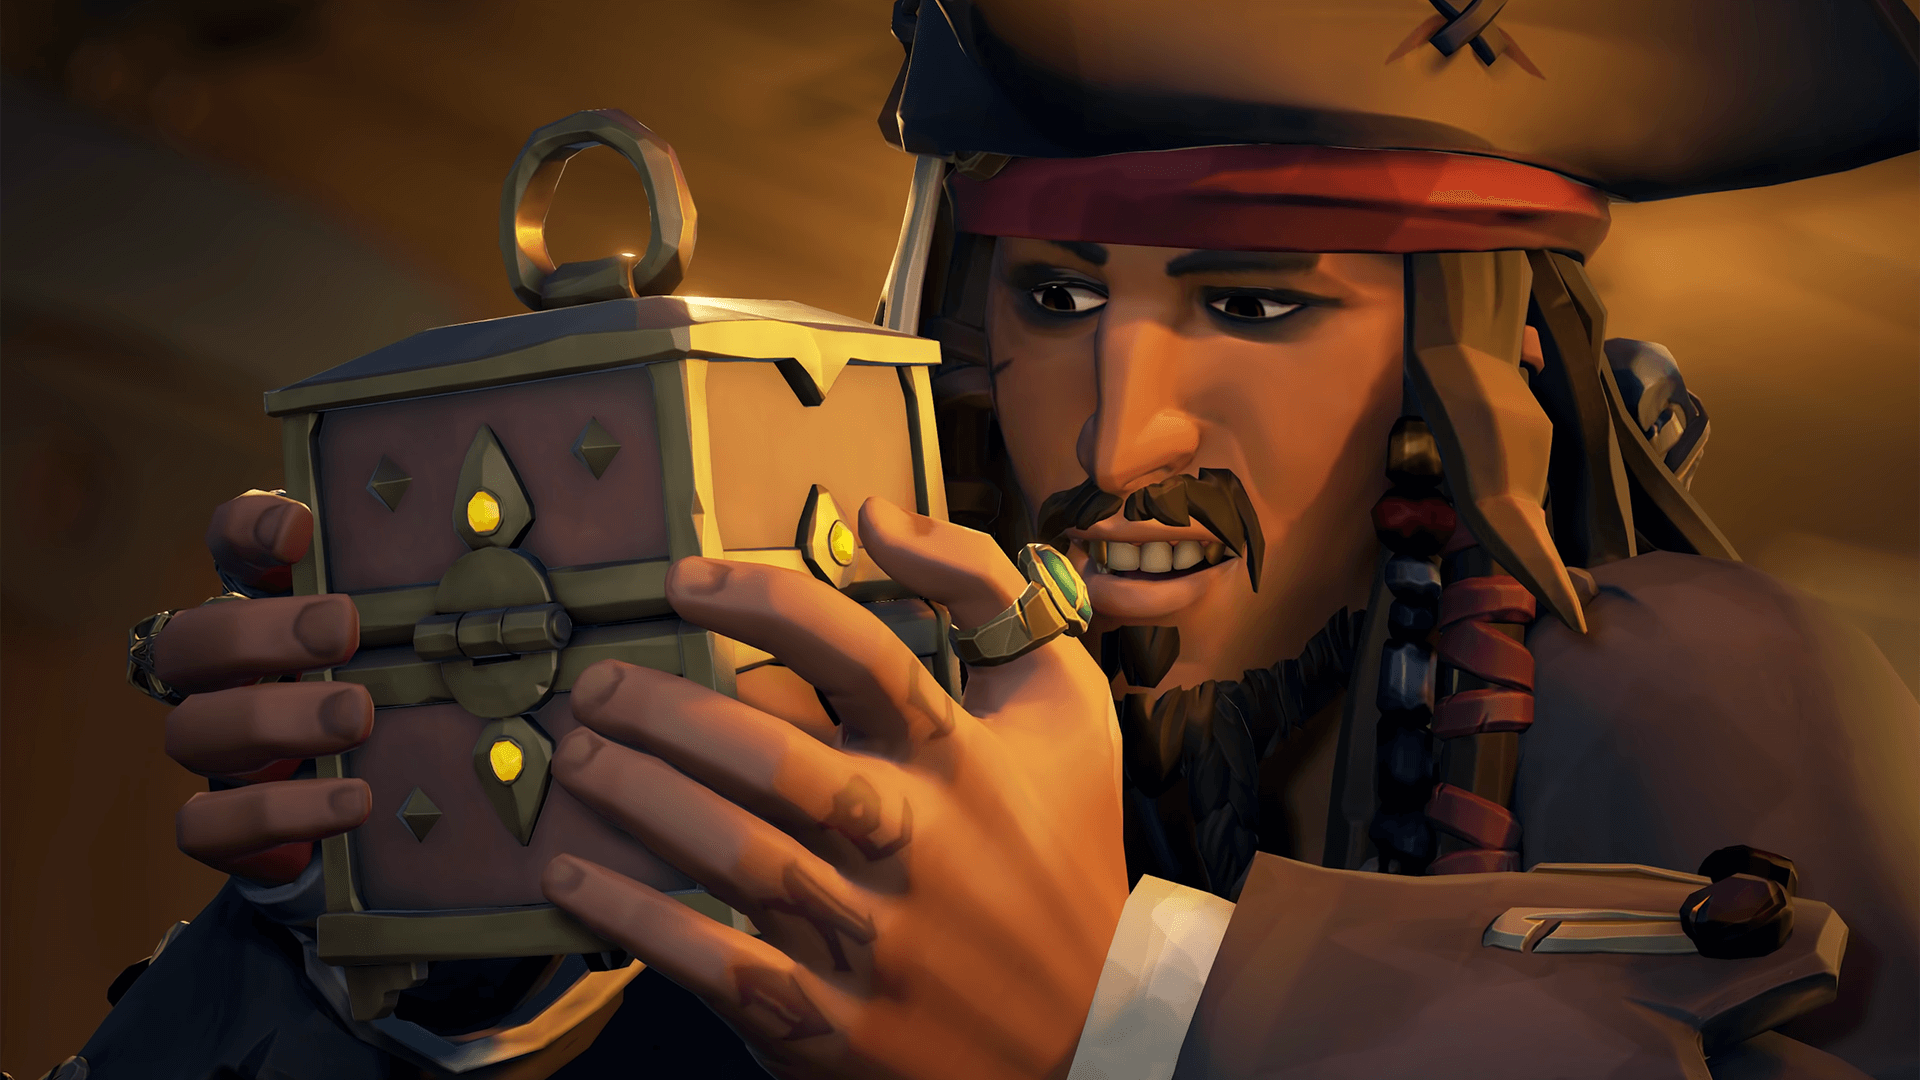 Jack Sparrow and the Golden Treasure